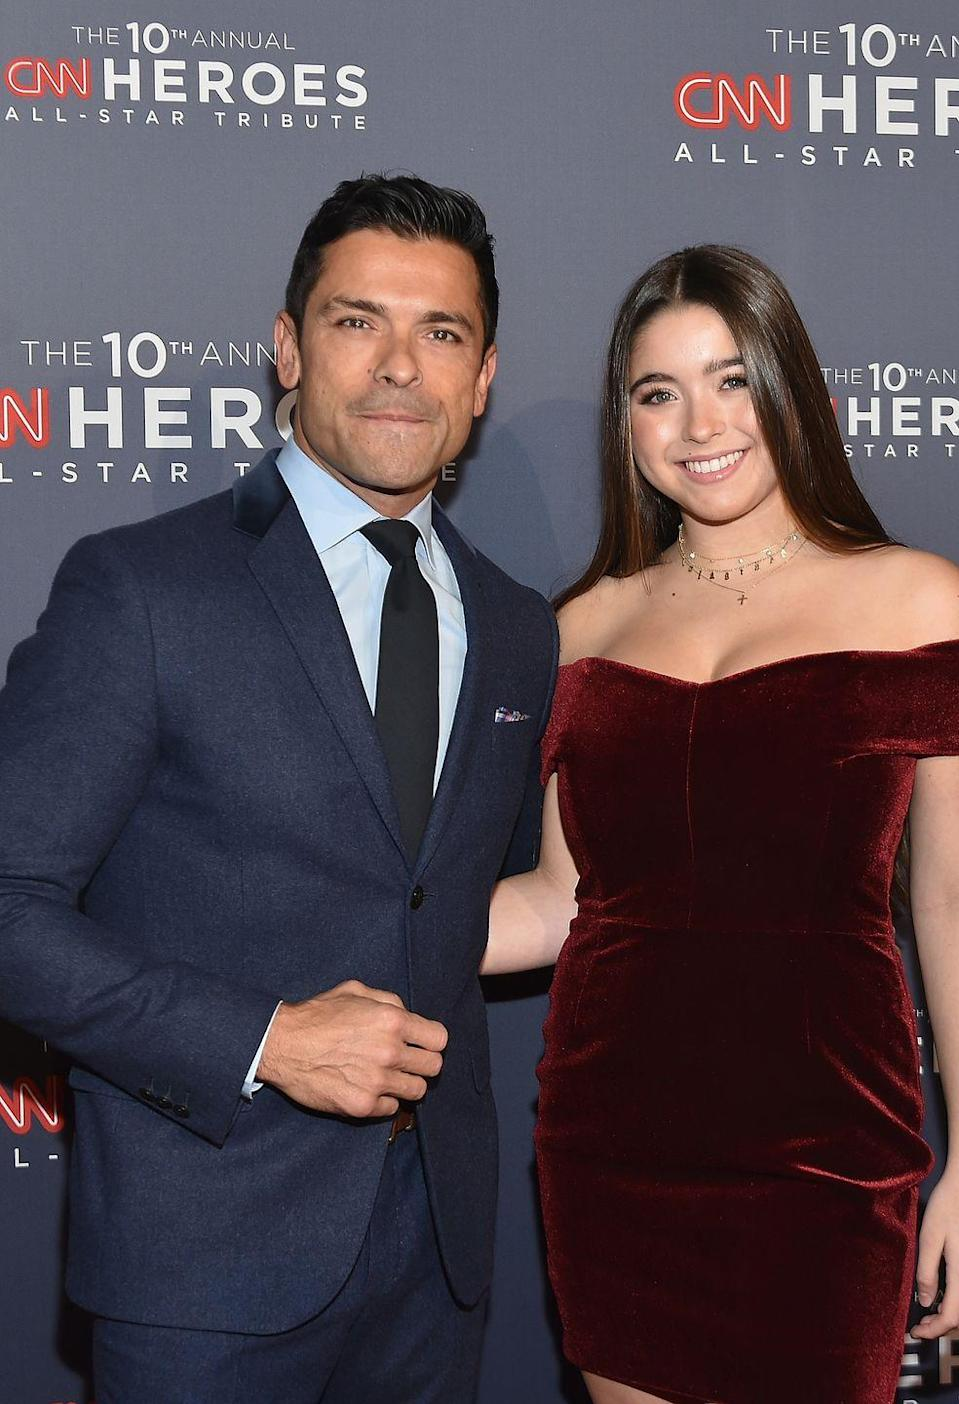 """<p><strong>Children</strong>: Michael Joseph Consuelos (23), Lola Consuelos (18), Joaquin Antonio Consuelos (17)</p><p>At 49, Consuelos is still one <a href=""""https://www.oprahmag.com/entertainment/a31470293/kelly-ripa-mark-consuelos-shirtless-pool-photo/"""" rel=""""nofollow noopener"""" target=""""_blank"""" data-ylk=""""slk:hot and steamy dad"""" class=""""link rapid-noclick-resp"""">hot and steamy dad</a> of three, and ever the <a href=""""https://www.oprahmag.com/beauty/hair/a32380433/kelly-ripa-gray-hair-roots/"""" rel=""""nofollow noopener"""" target=""""_blank"""" data-ylk=""""slk:supportive husband to Kelly Ripa"""" class=""""link rapid-noclick-resp"""">supportive husband to Kelly Ripa</a>.<br></p>"""